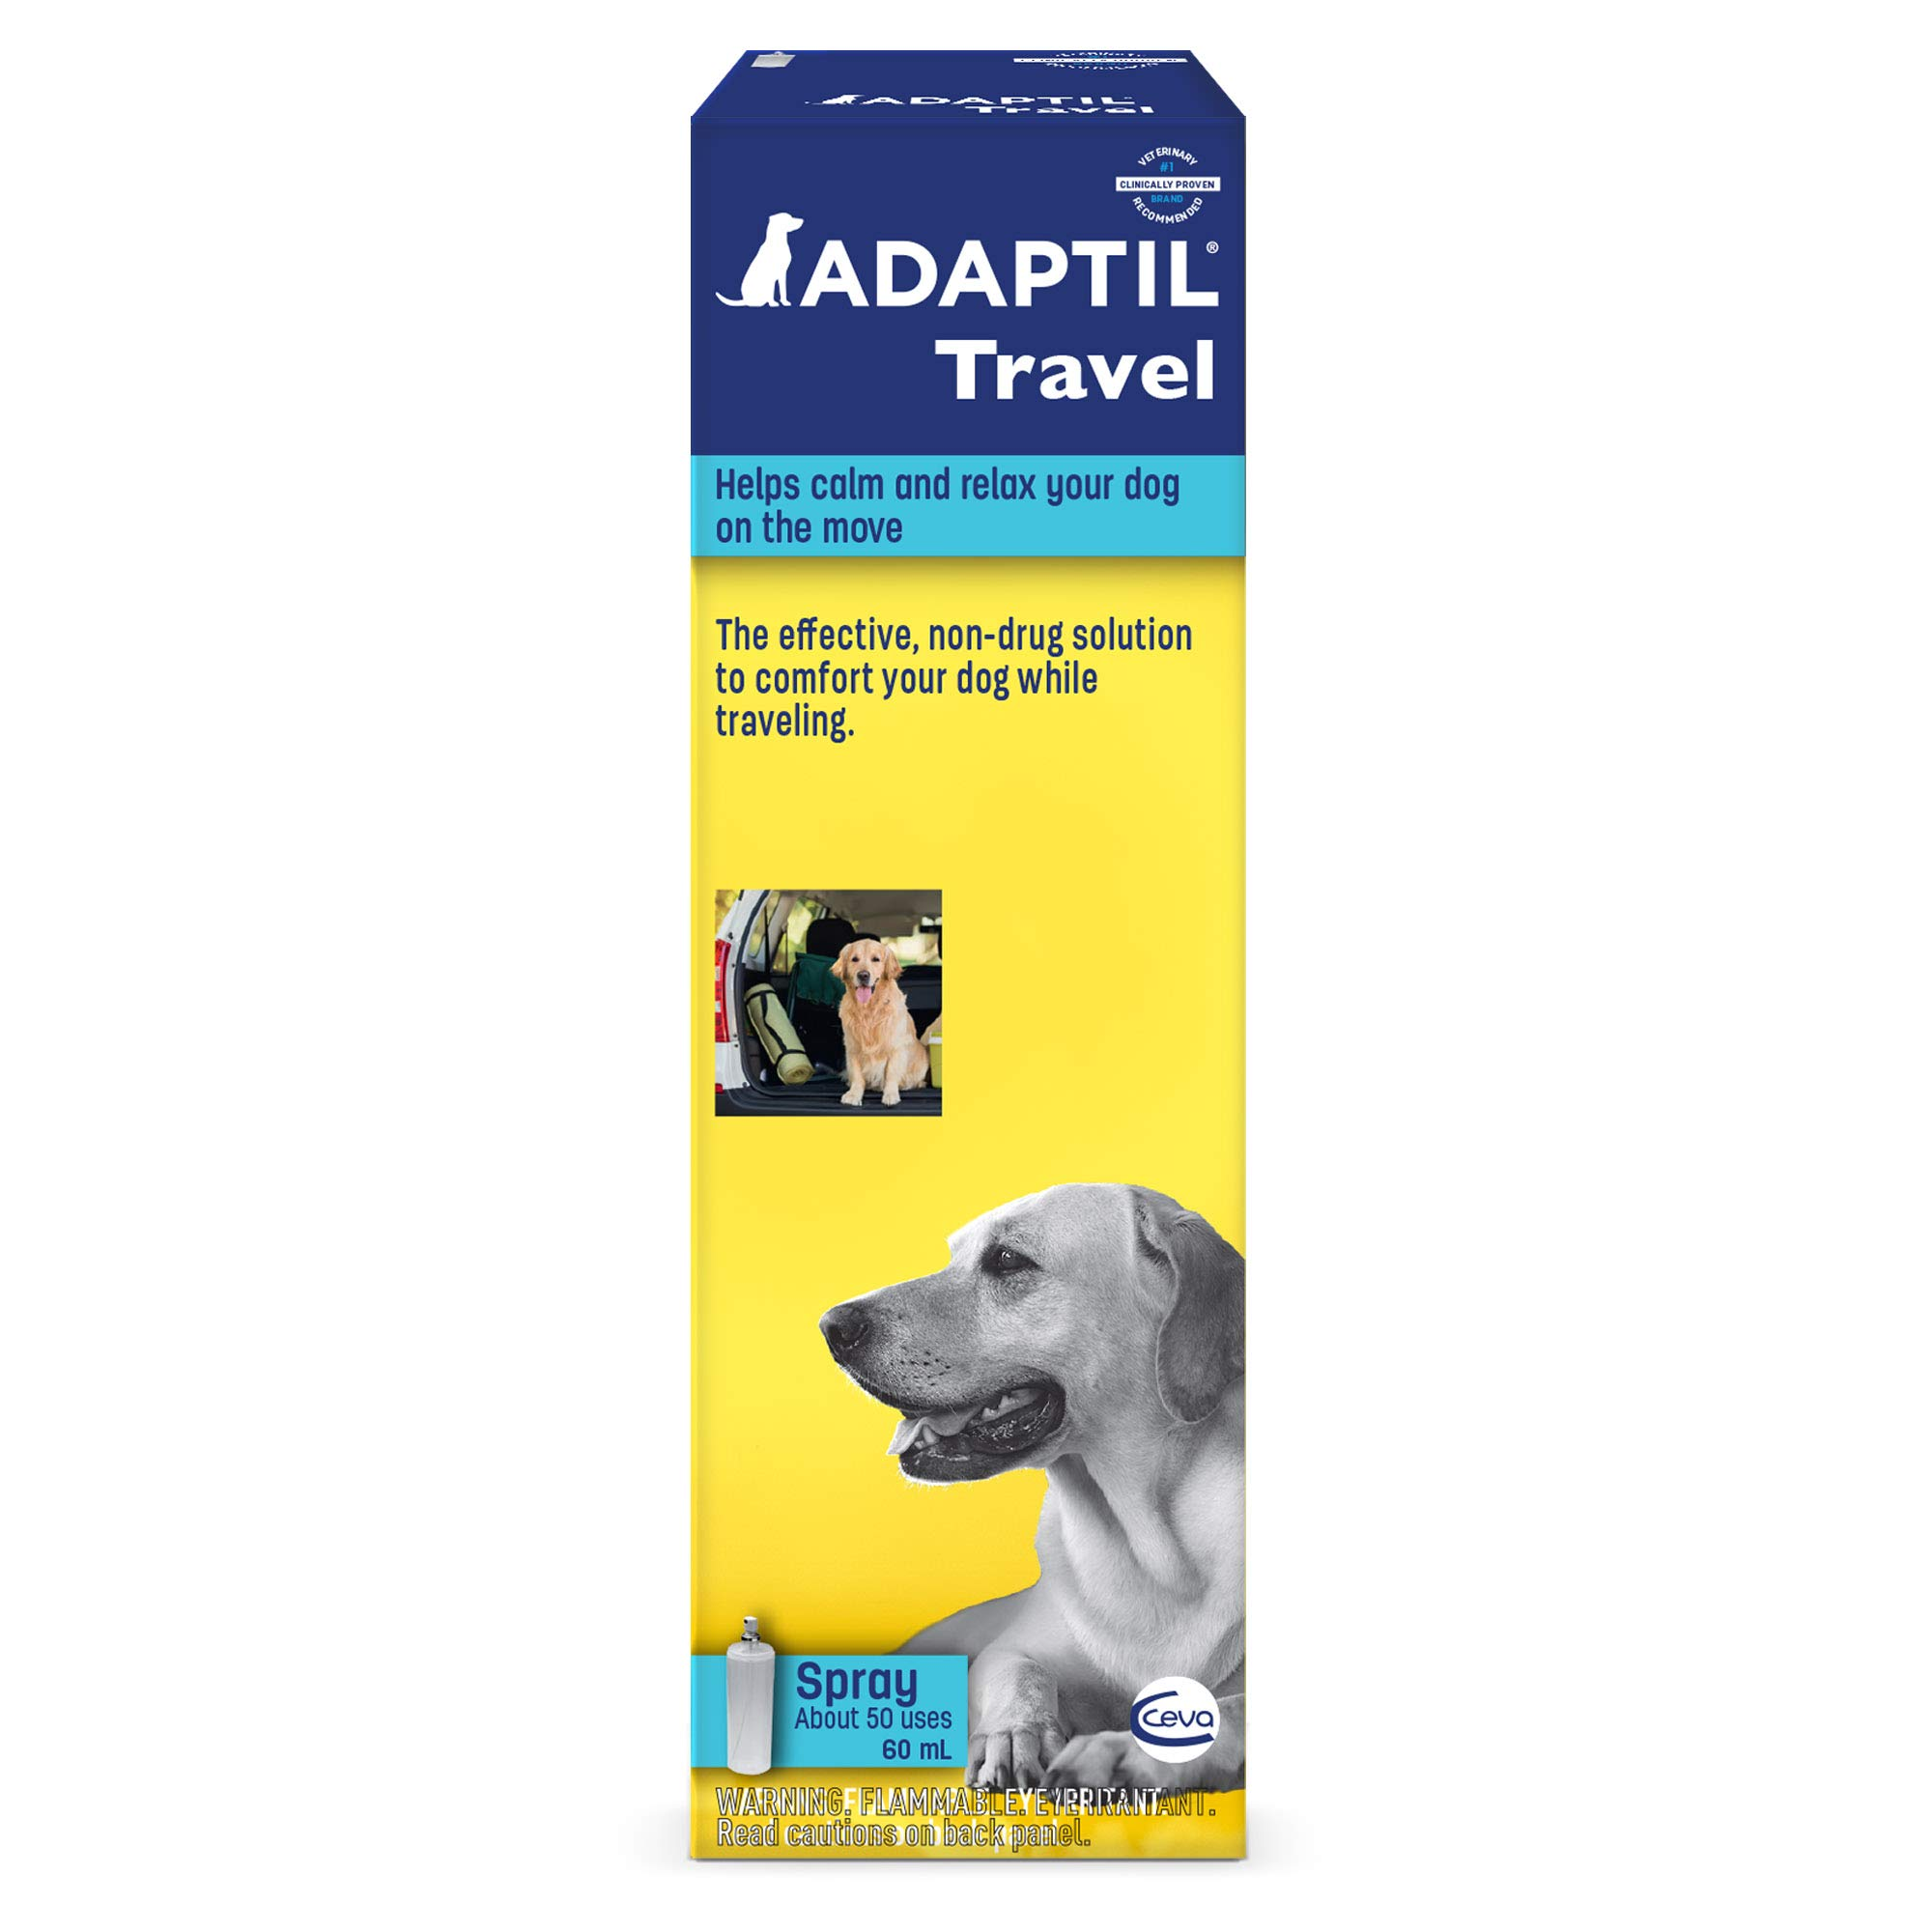 Adaptil Travel Calming Spray For Dogs(60 ml) - Calming & Comfort During Travel by Adaptil